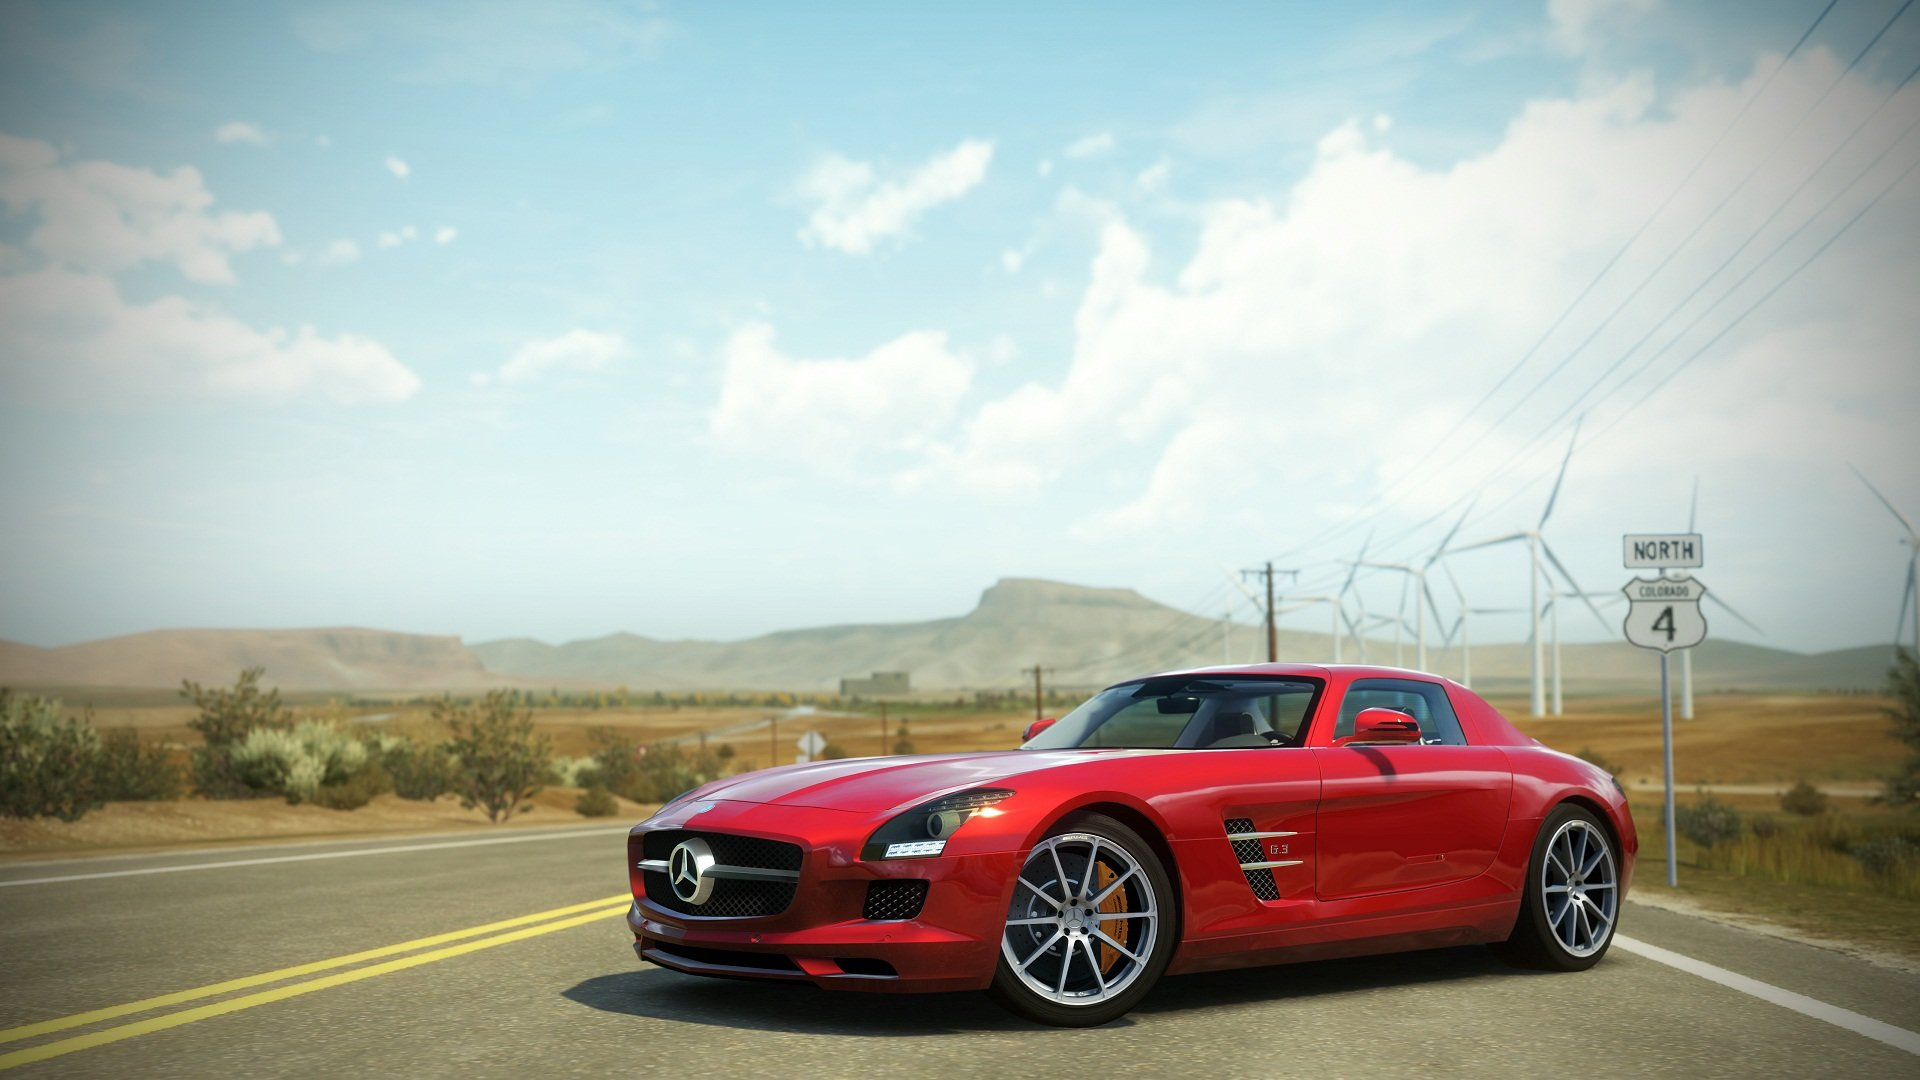 Download full hd Forza Horizon PC background ID:47761 for free